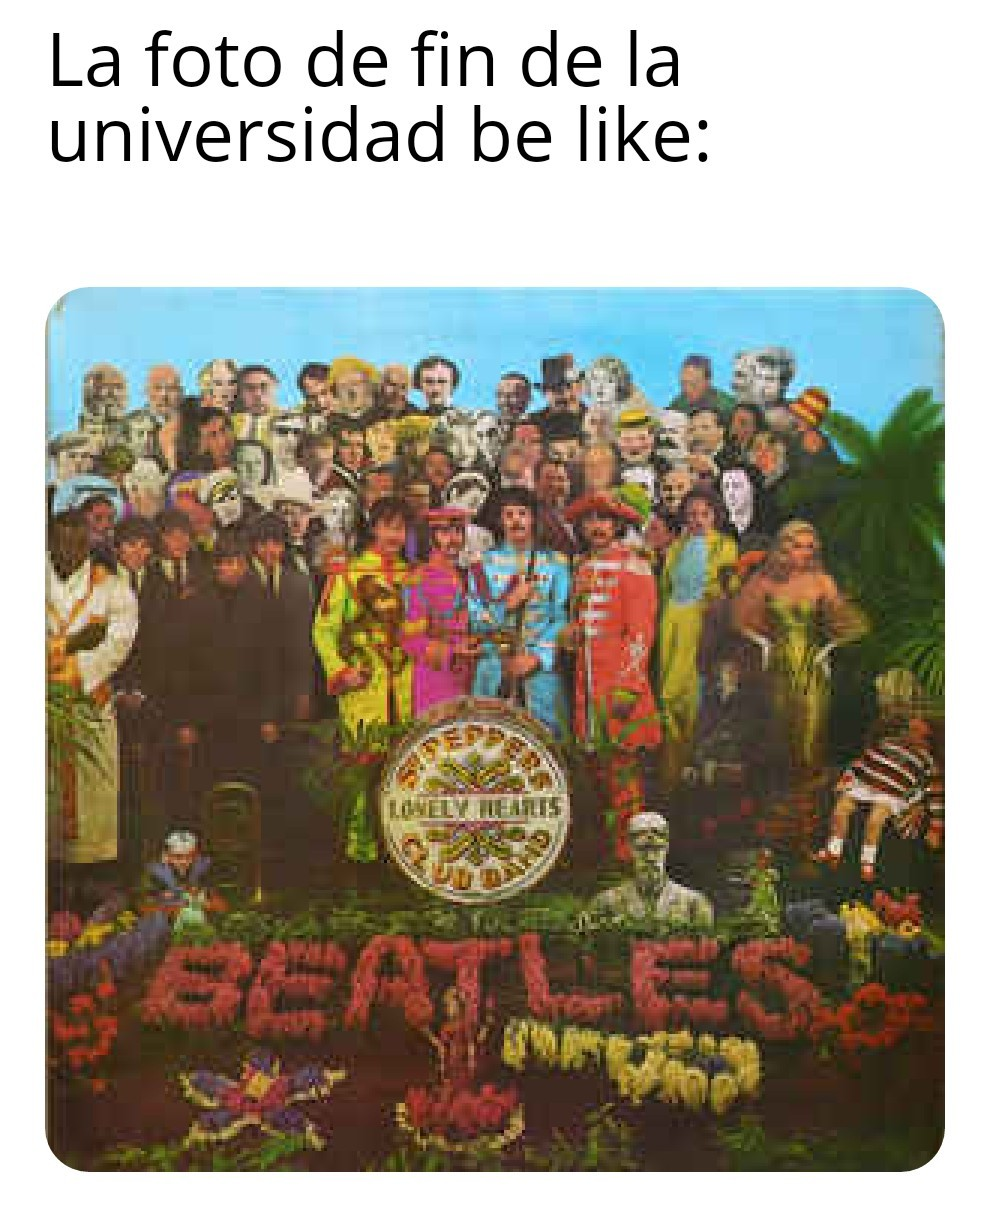 Sgt. Pepper's lonely Hearts Club Band - meme